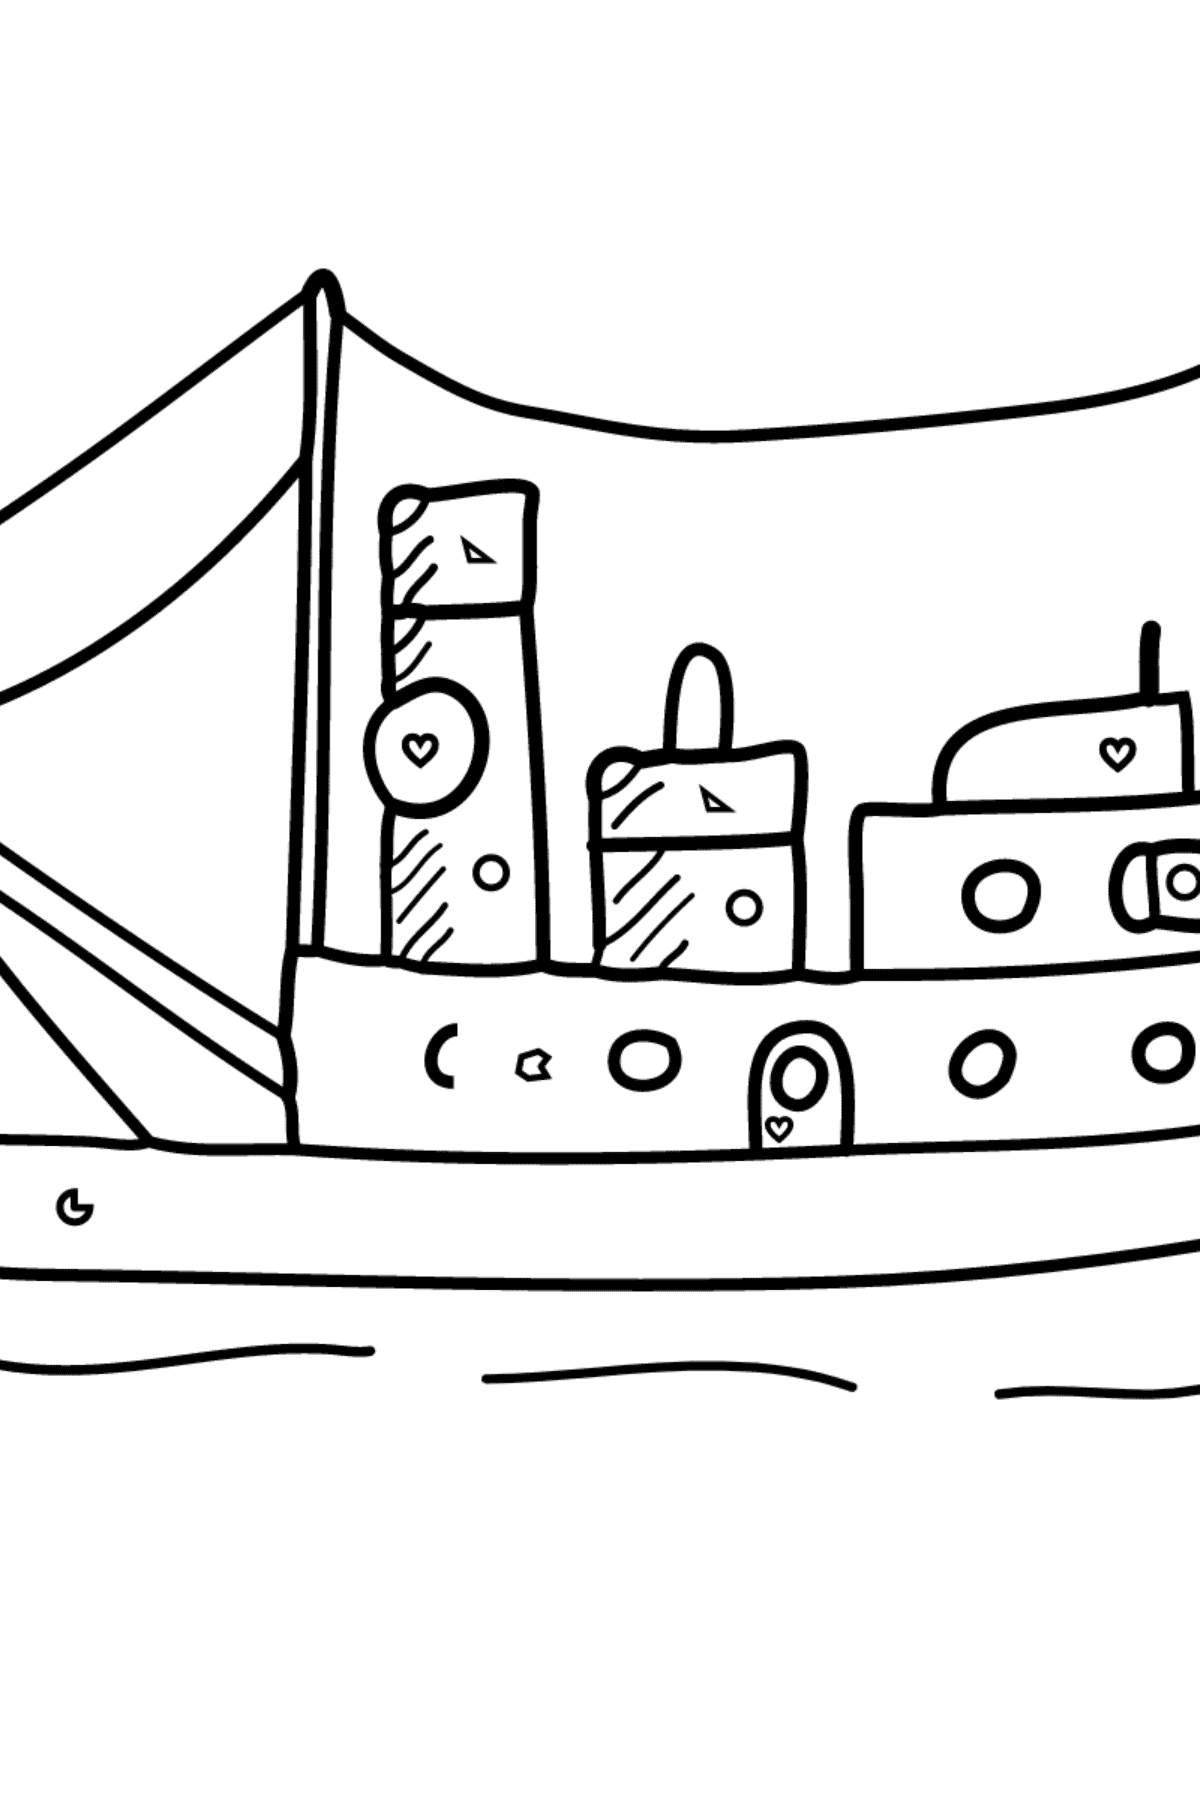 Coloring Page - A Cargo Ship - Coloring by Geometric Shapes for Children